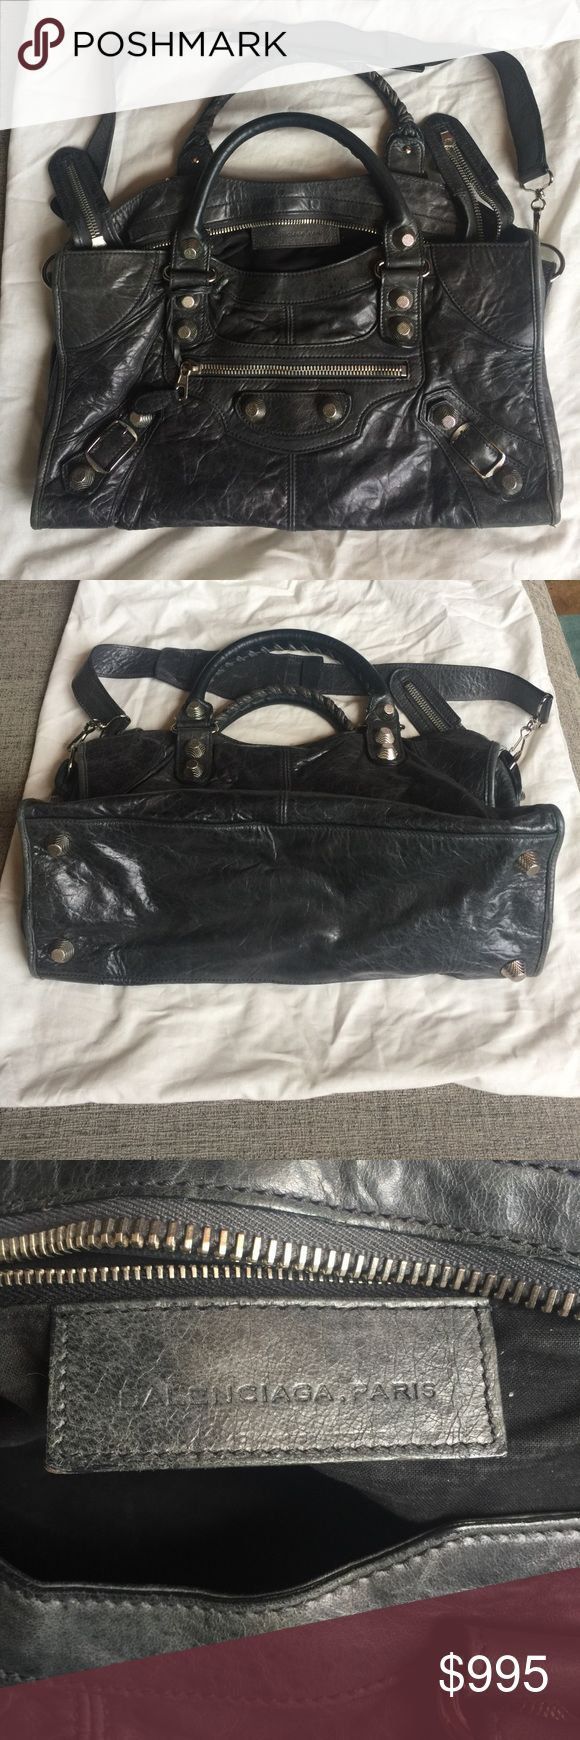 Balenciaga Giant 12 Siver City Bag This bag is a blue gray color, large and in excellent condition. Balenciaga Bags Shoulder Bags